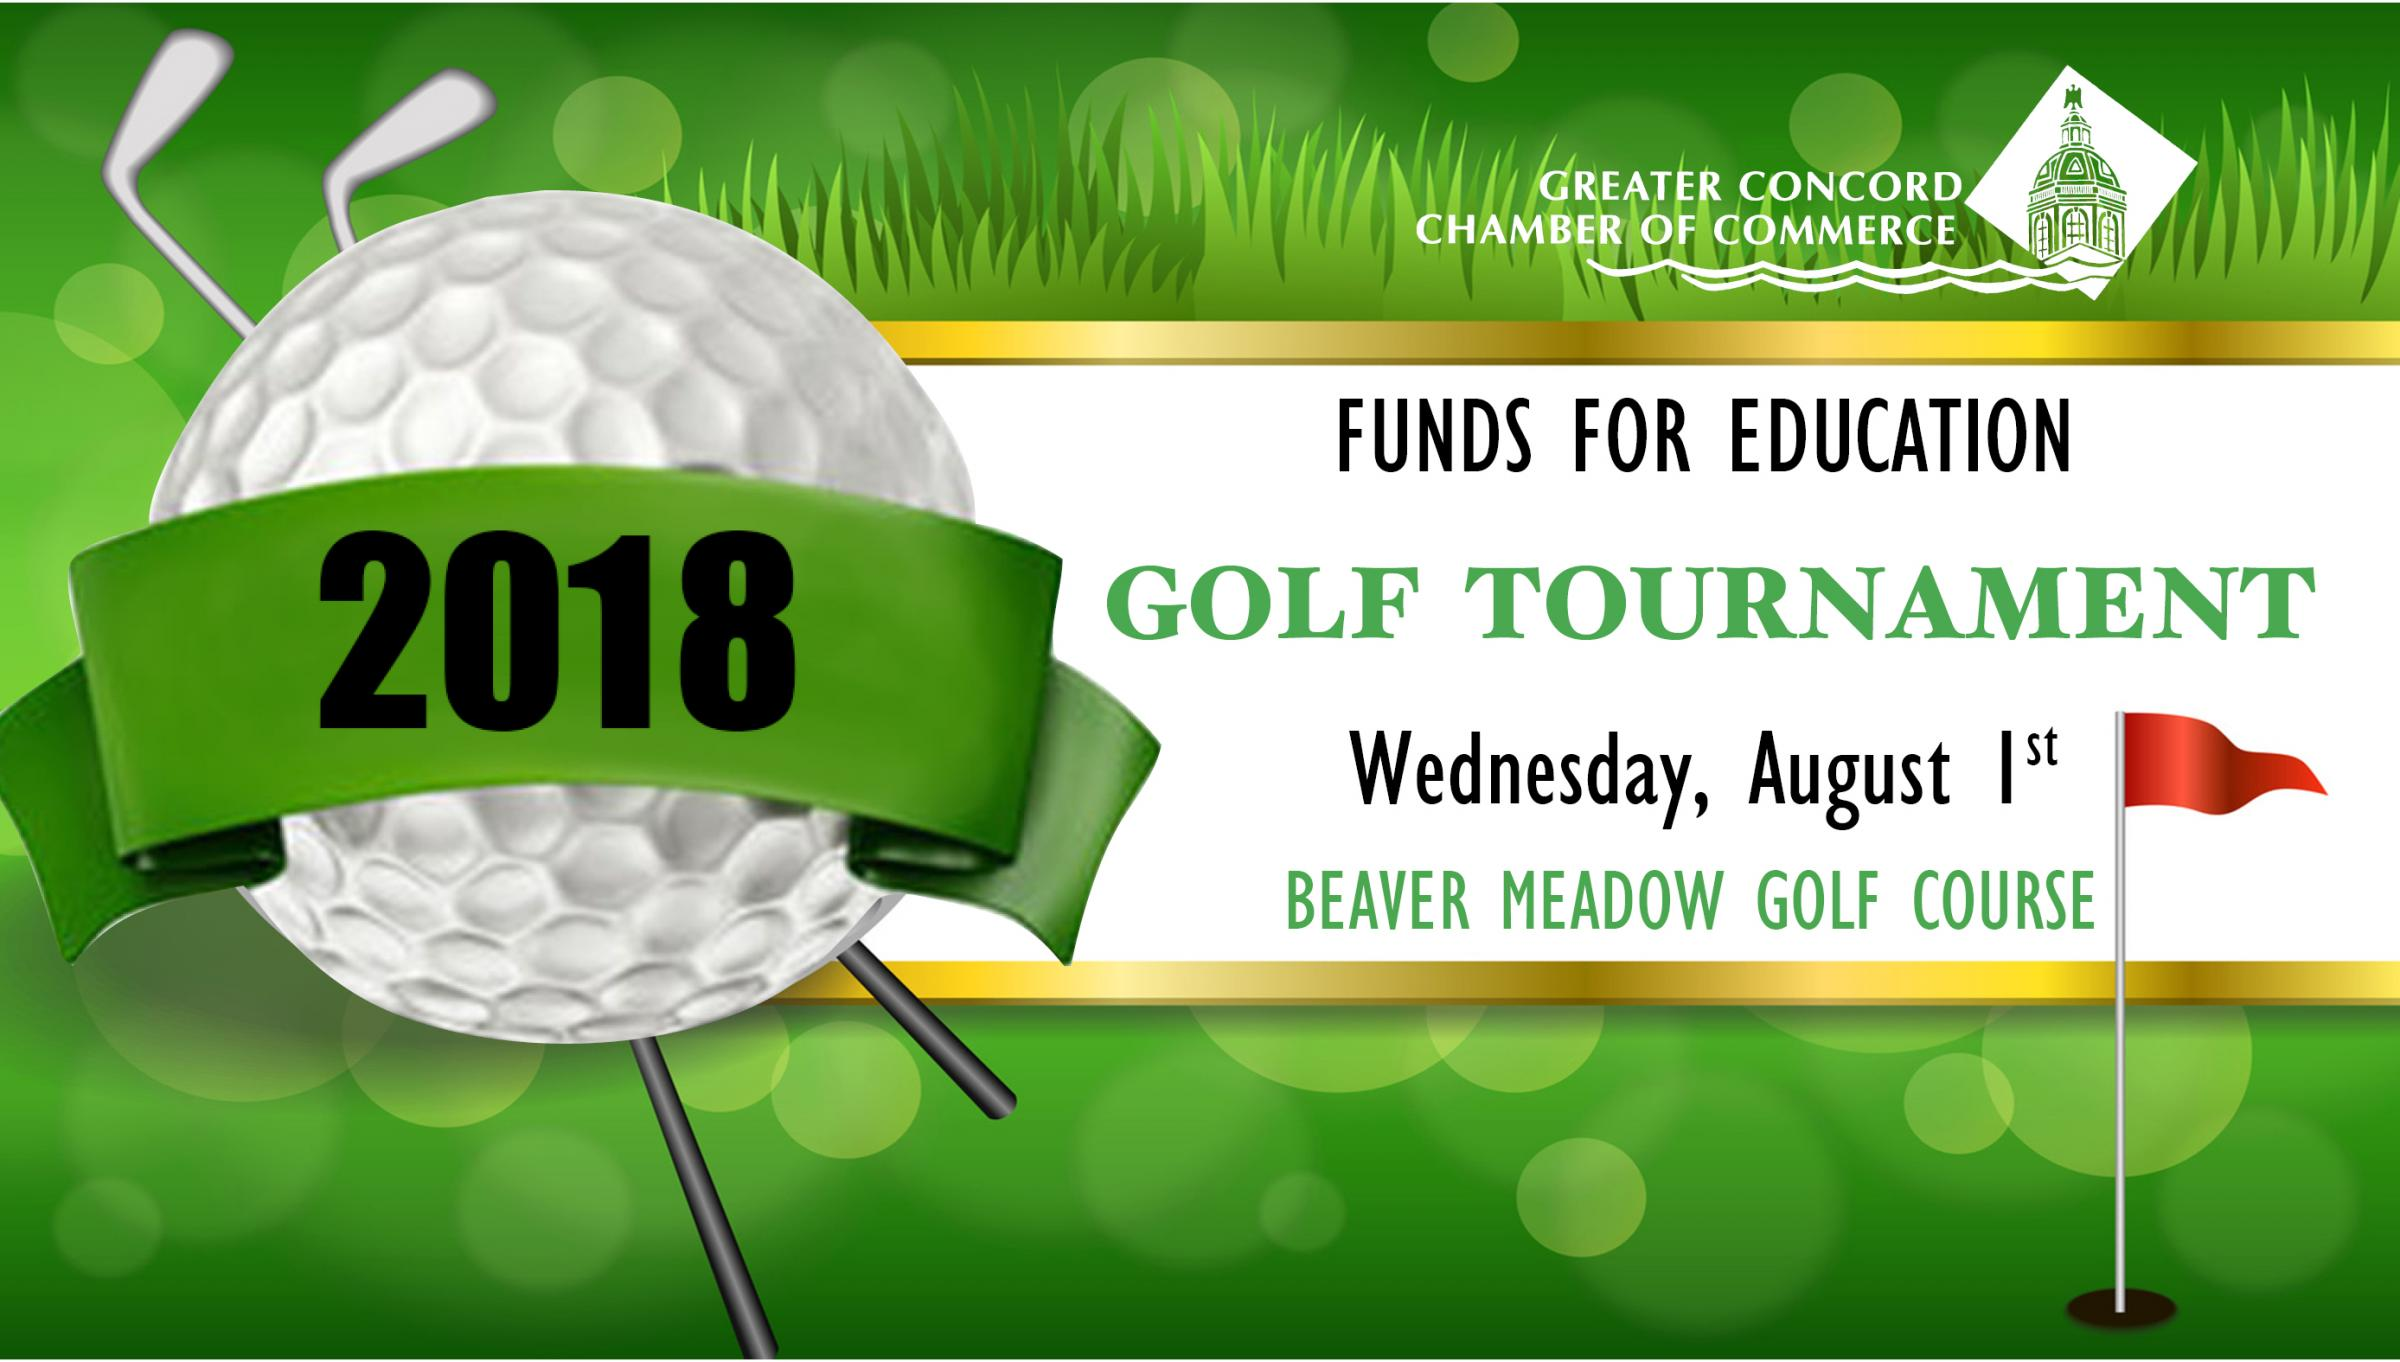 2018 Annual Funds for Education Golf Tournament